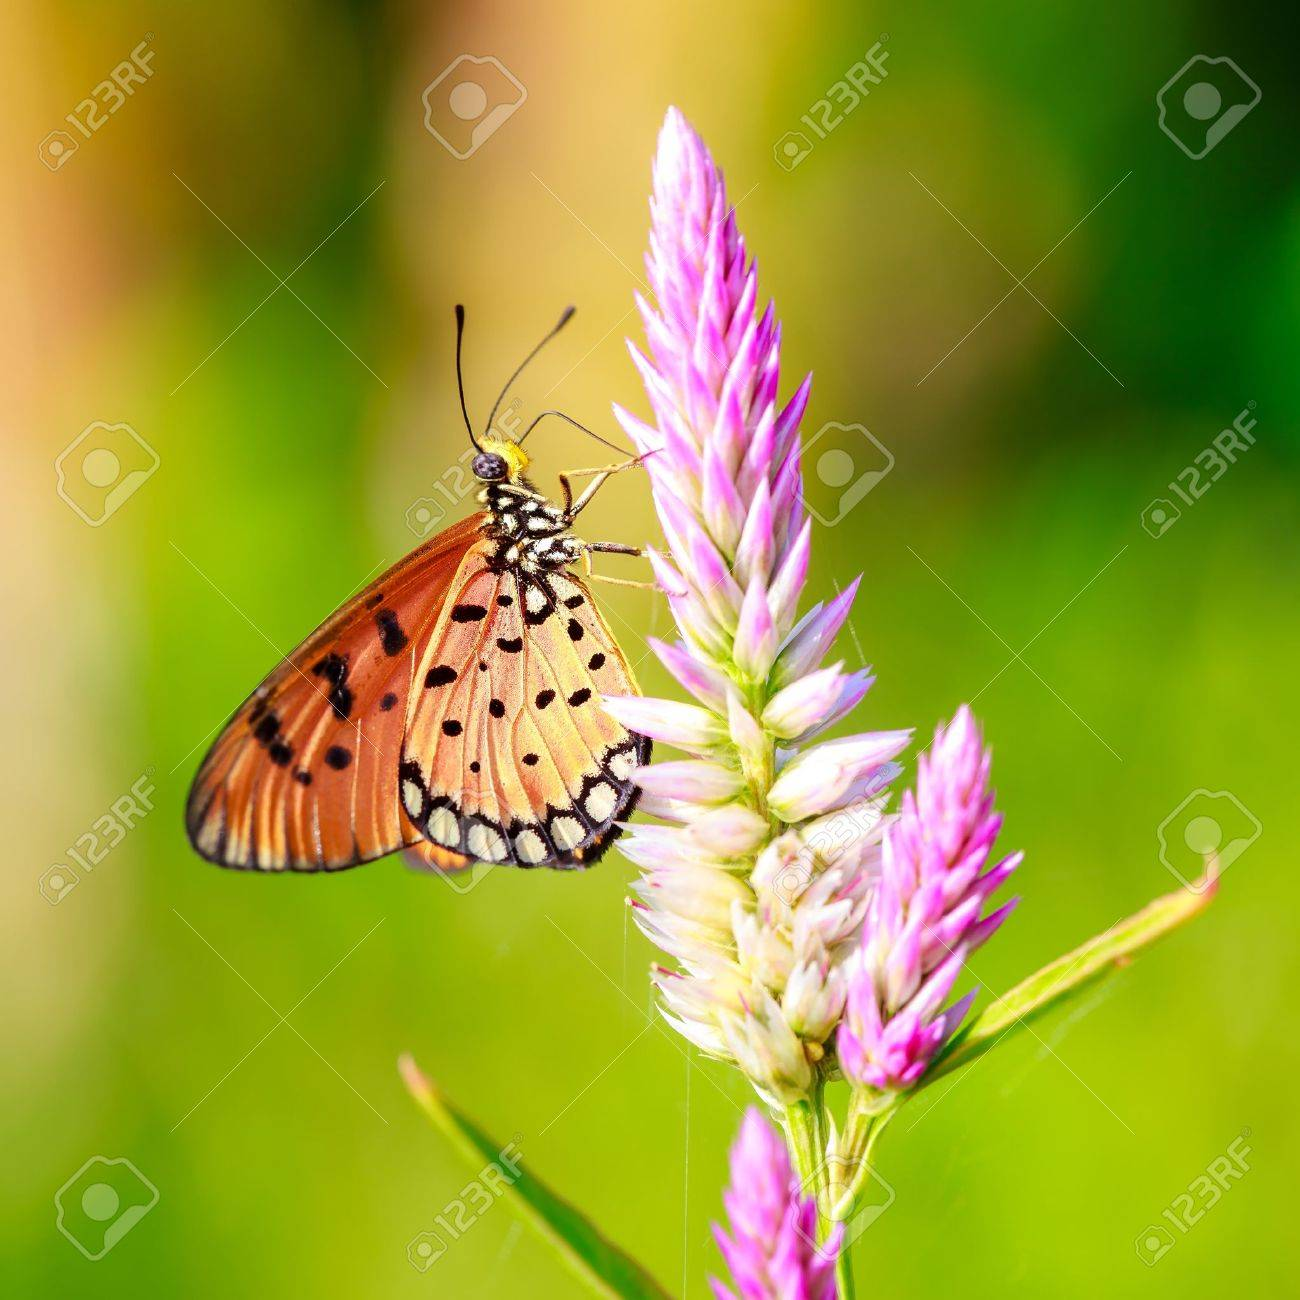 Closeup butterfly on flower Stock Photo - 21783730